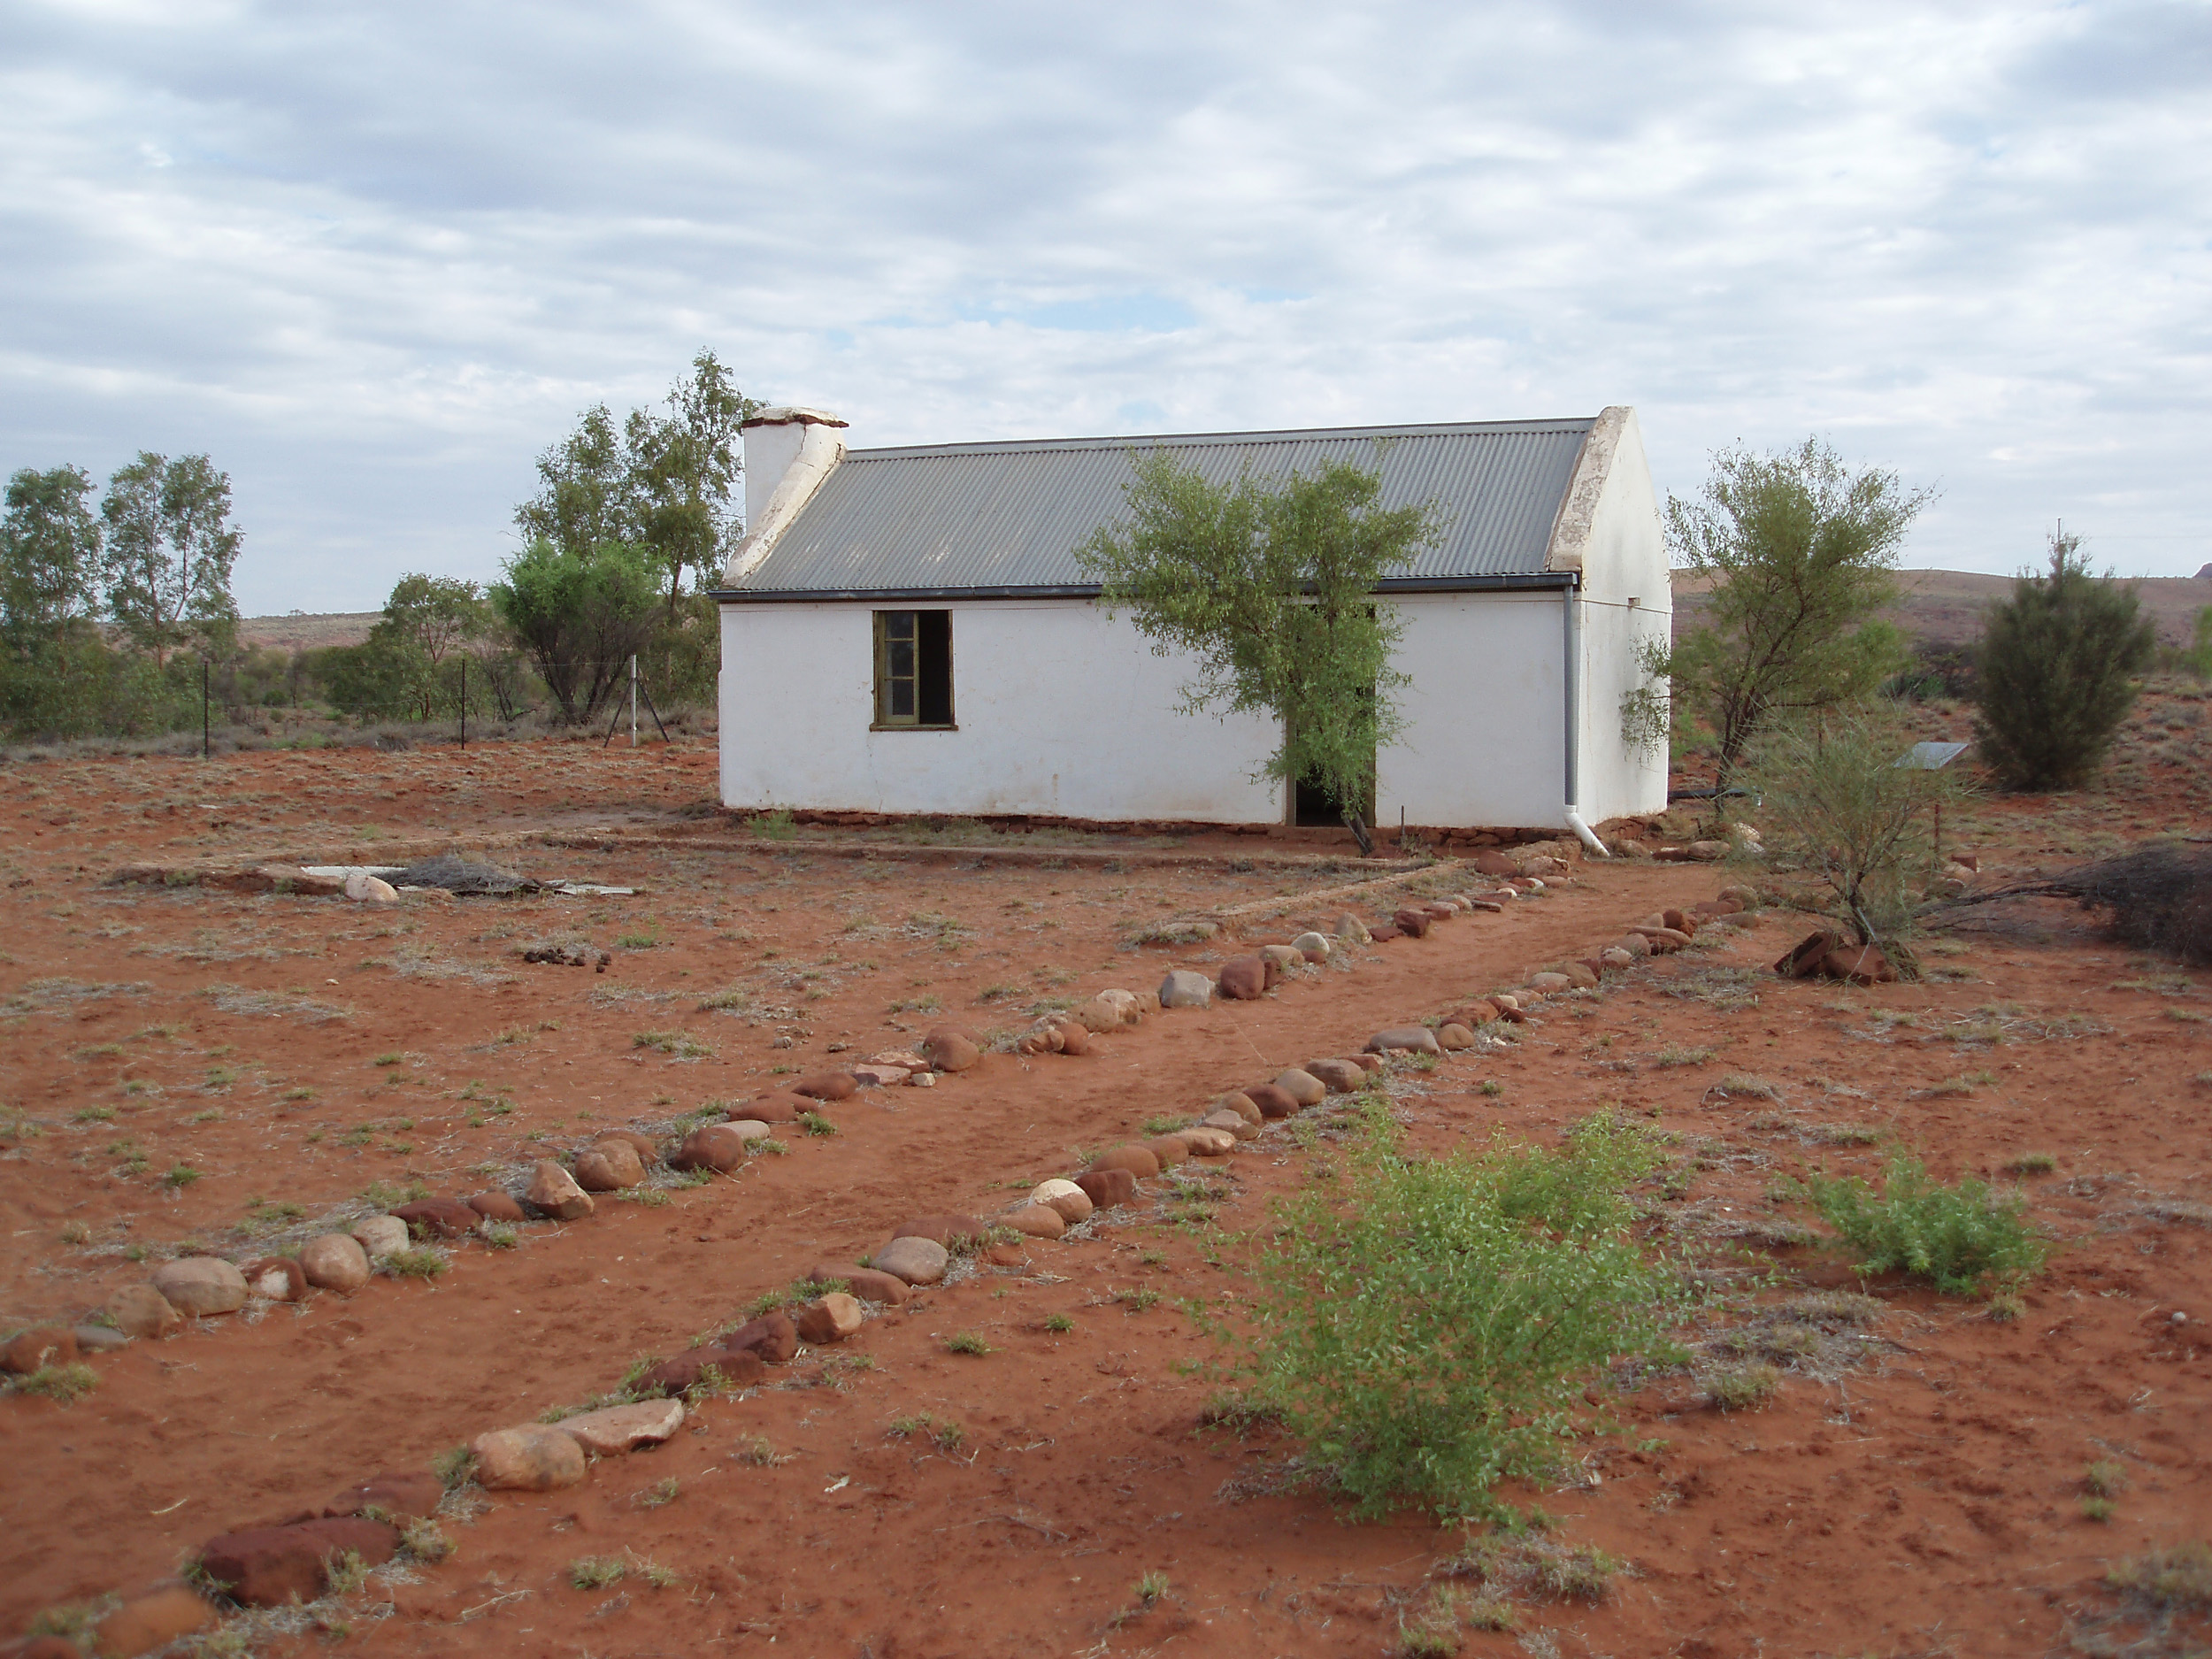 a small disused house in the desert